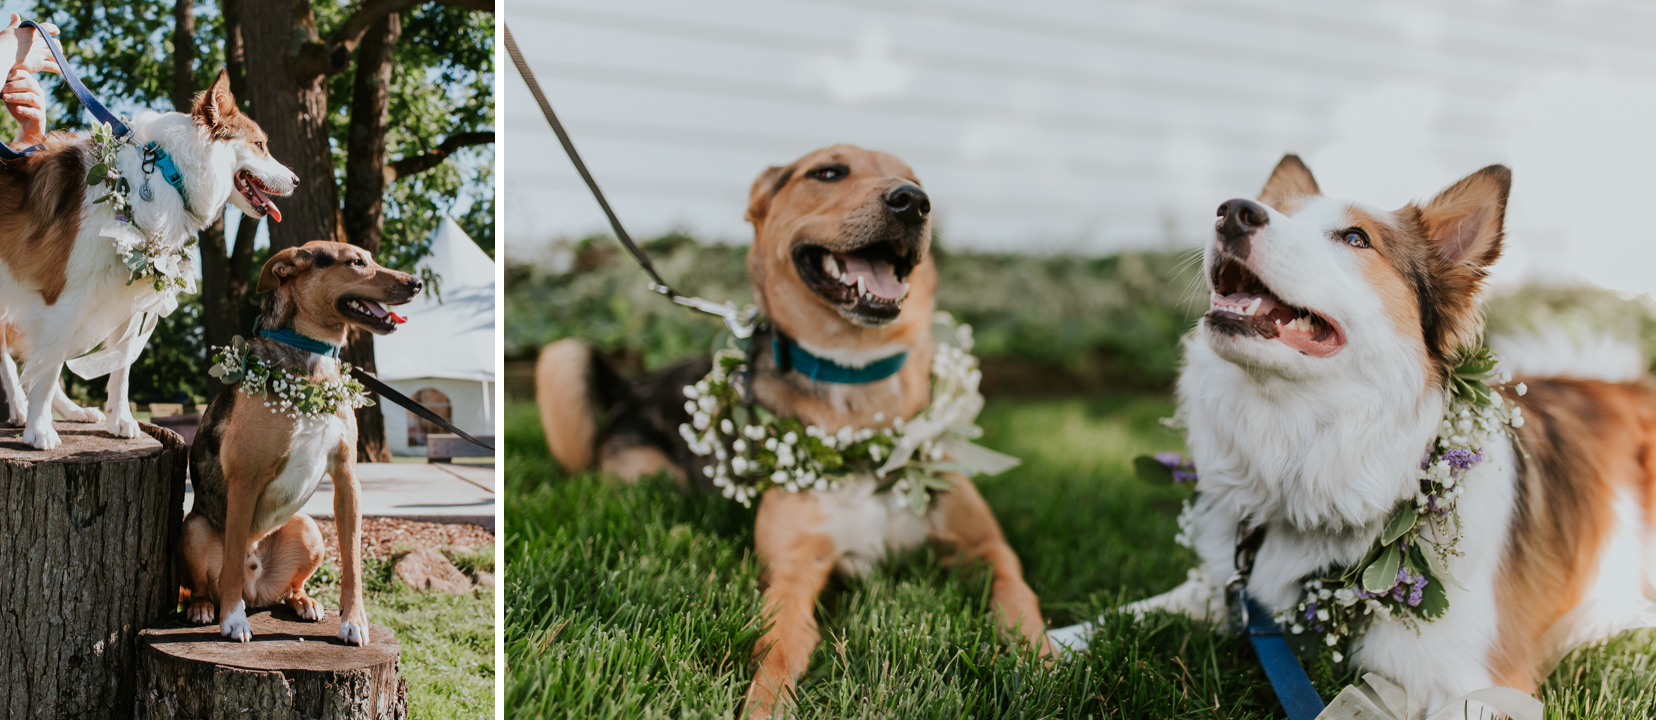 lola-grace-photography-dog-intimate-wedding-22.jpg